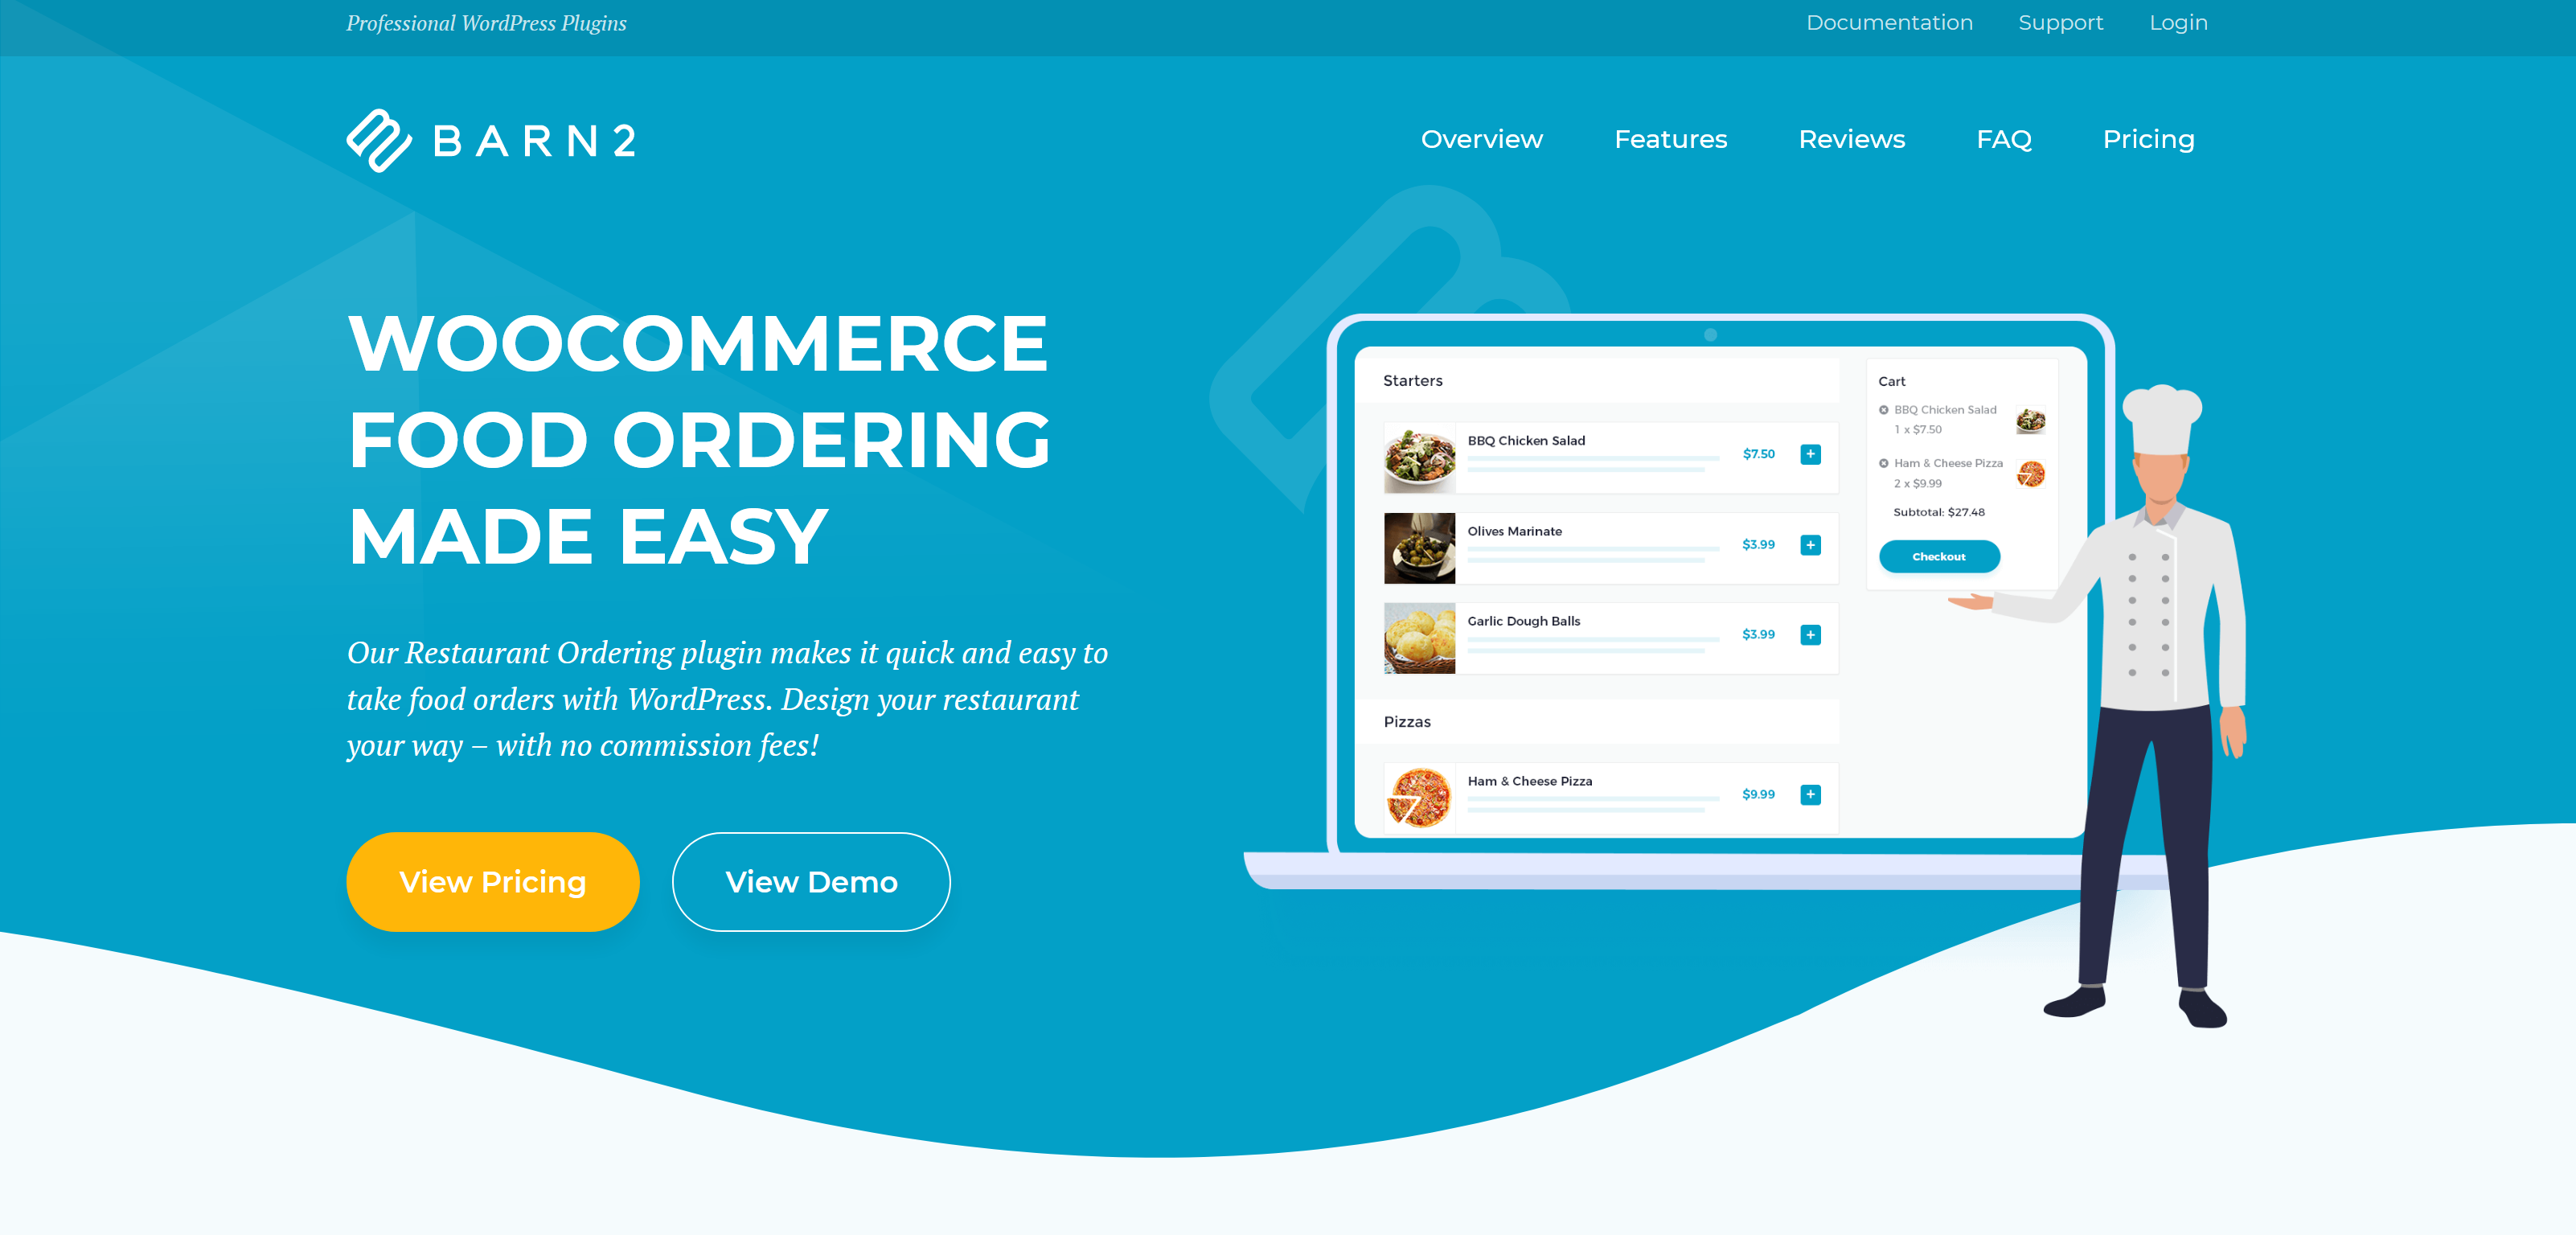 WooCommerce Restaurant Ordering 1.2.2 – WordPress Plugin by Barn2 Media